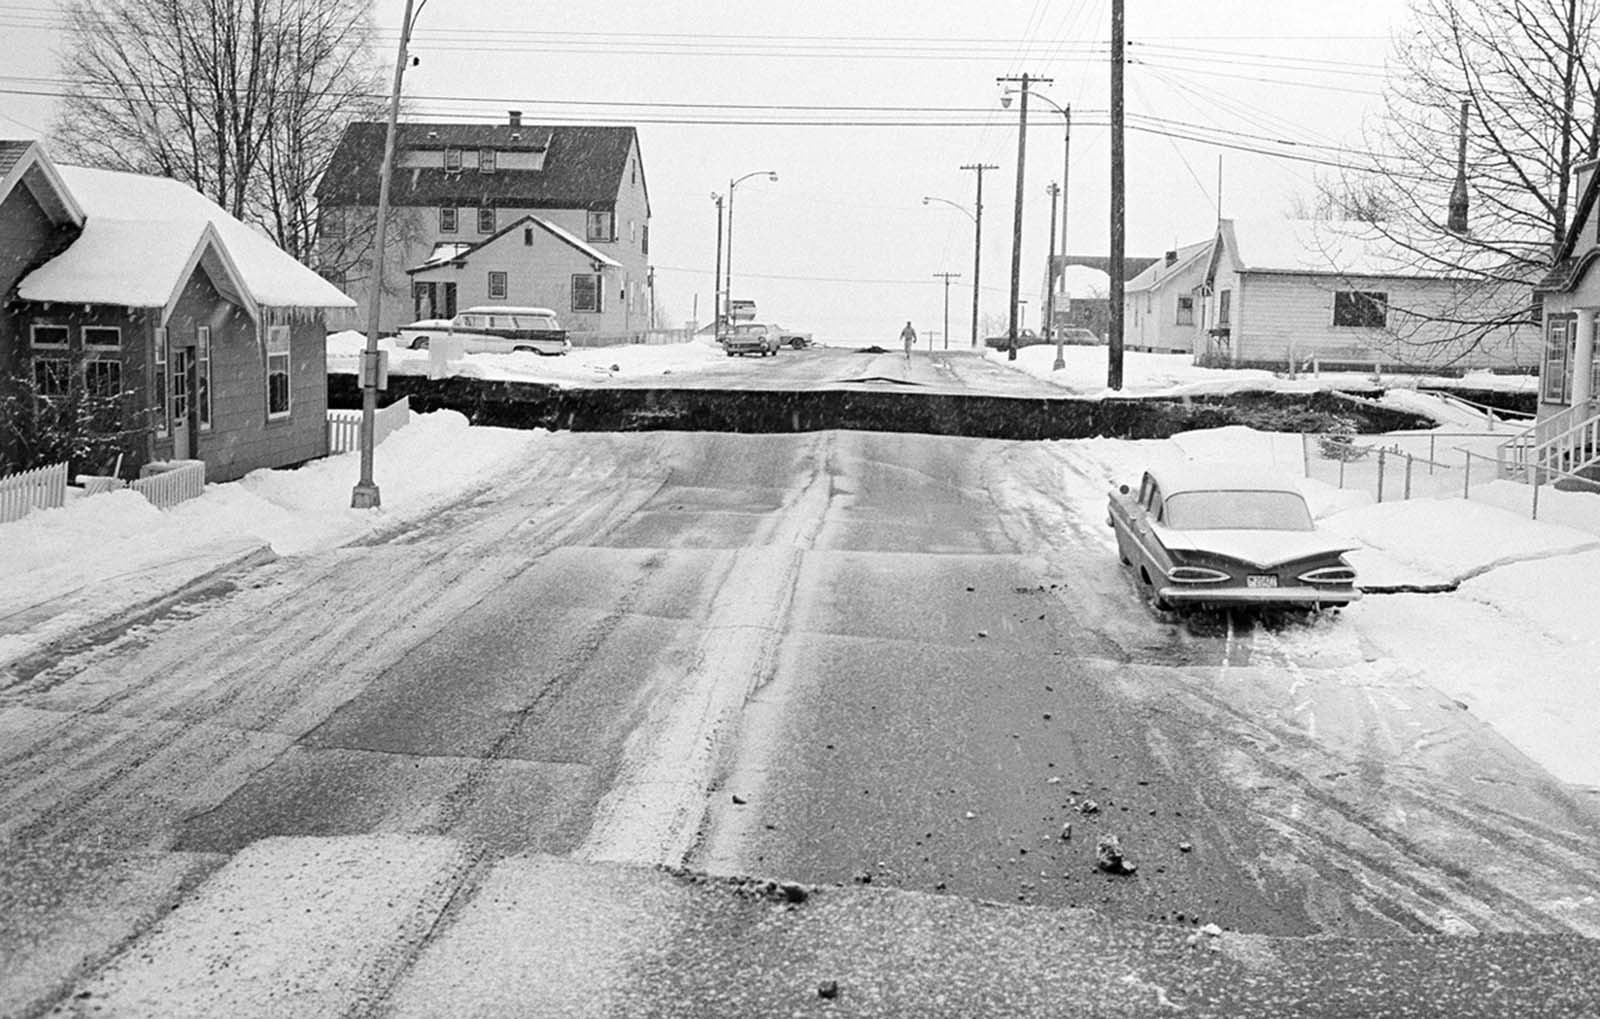 A fractured city block in Anchorage, Alaska, on March 28, 1964.